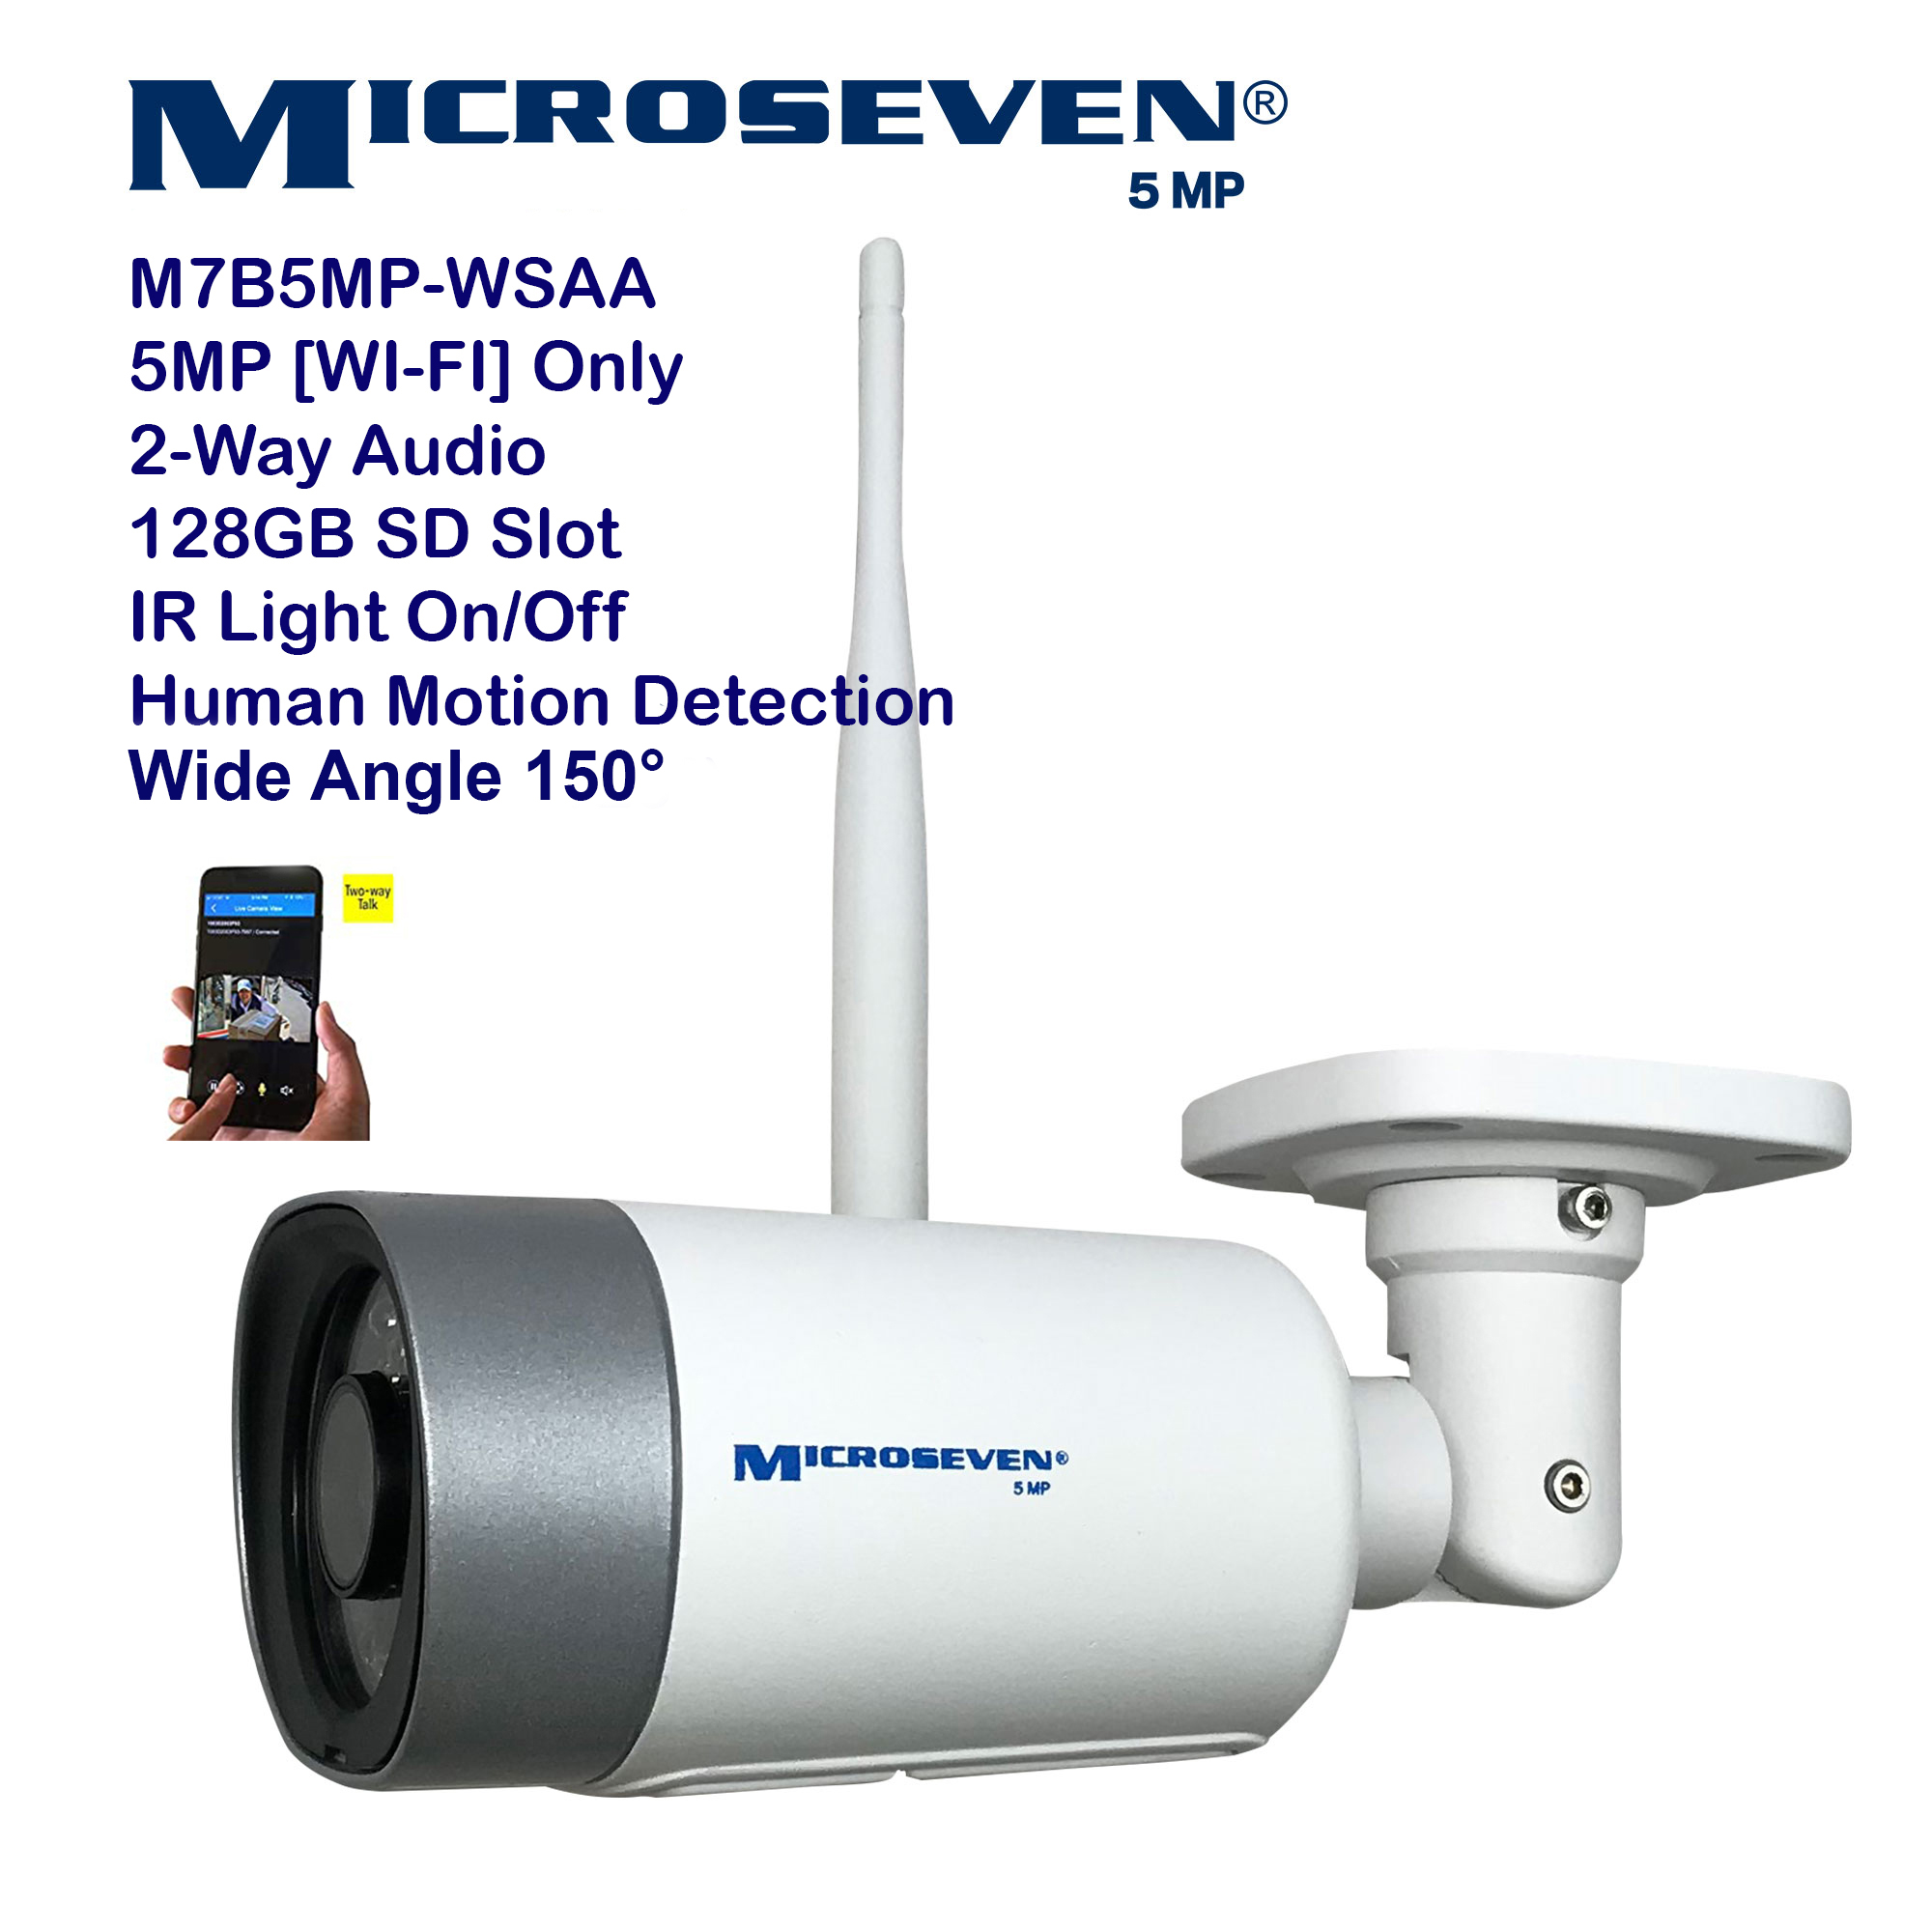 "Microseven (2020)Open Source 5MP (2560x1920) UltraHD [ Wi - Fi ] or Wired SONY 1/2.8"" Chipset CMOS 2.8mm 5MP Lens Wide Angle (150°)  Two-Way Audio with Built-in Amplified Microphone and Speaker plug and Play ONVIF, IR Light (On/Off in the APP) Security Indoor / Outdoor IP Camera, A.I. Human Motion Detection, 128GB SD Slot, Day & Night, Web GUI & Apps, VMS (Video Management System) Free 24hr M7 Cloud Storage, Works with Alexa with No Monthly Fee+ Broadcasting on YouTube, Facebook & Microseven.tv"